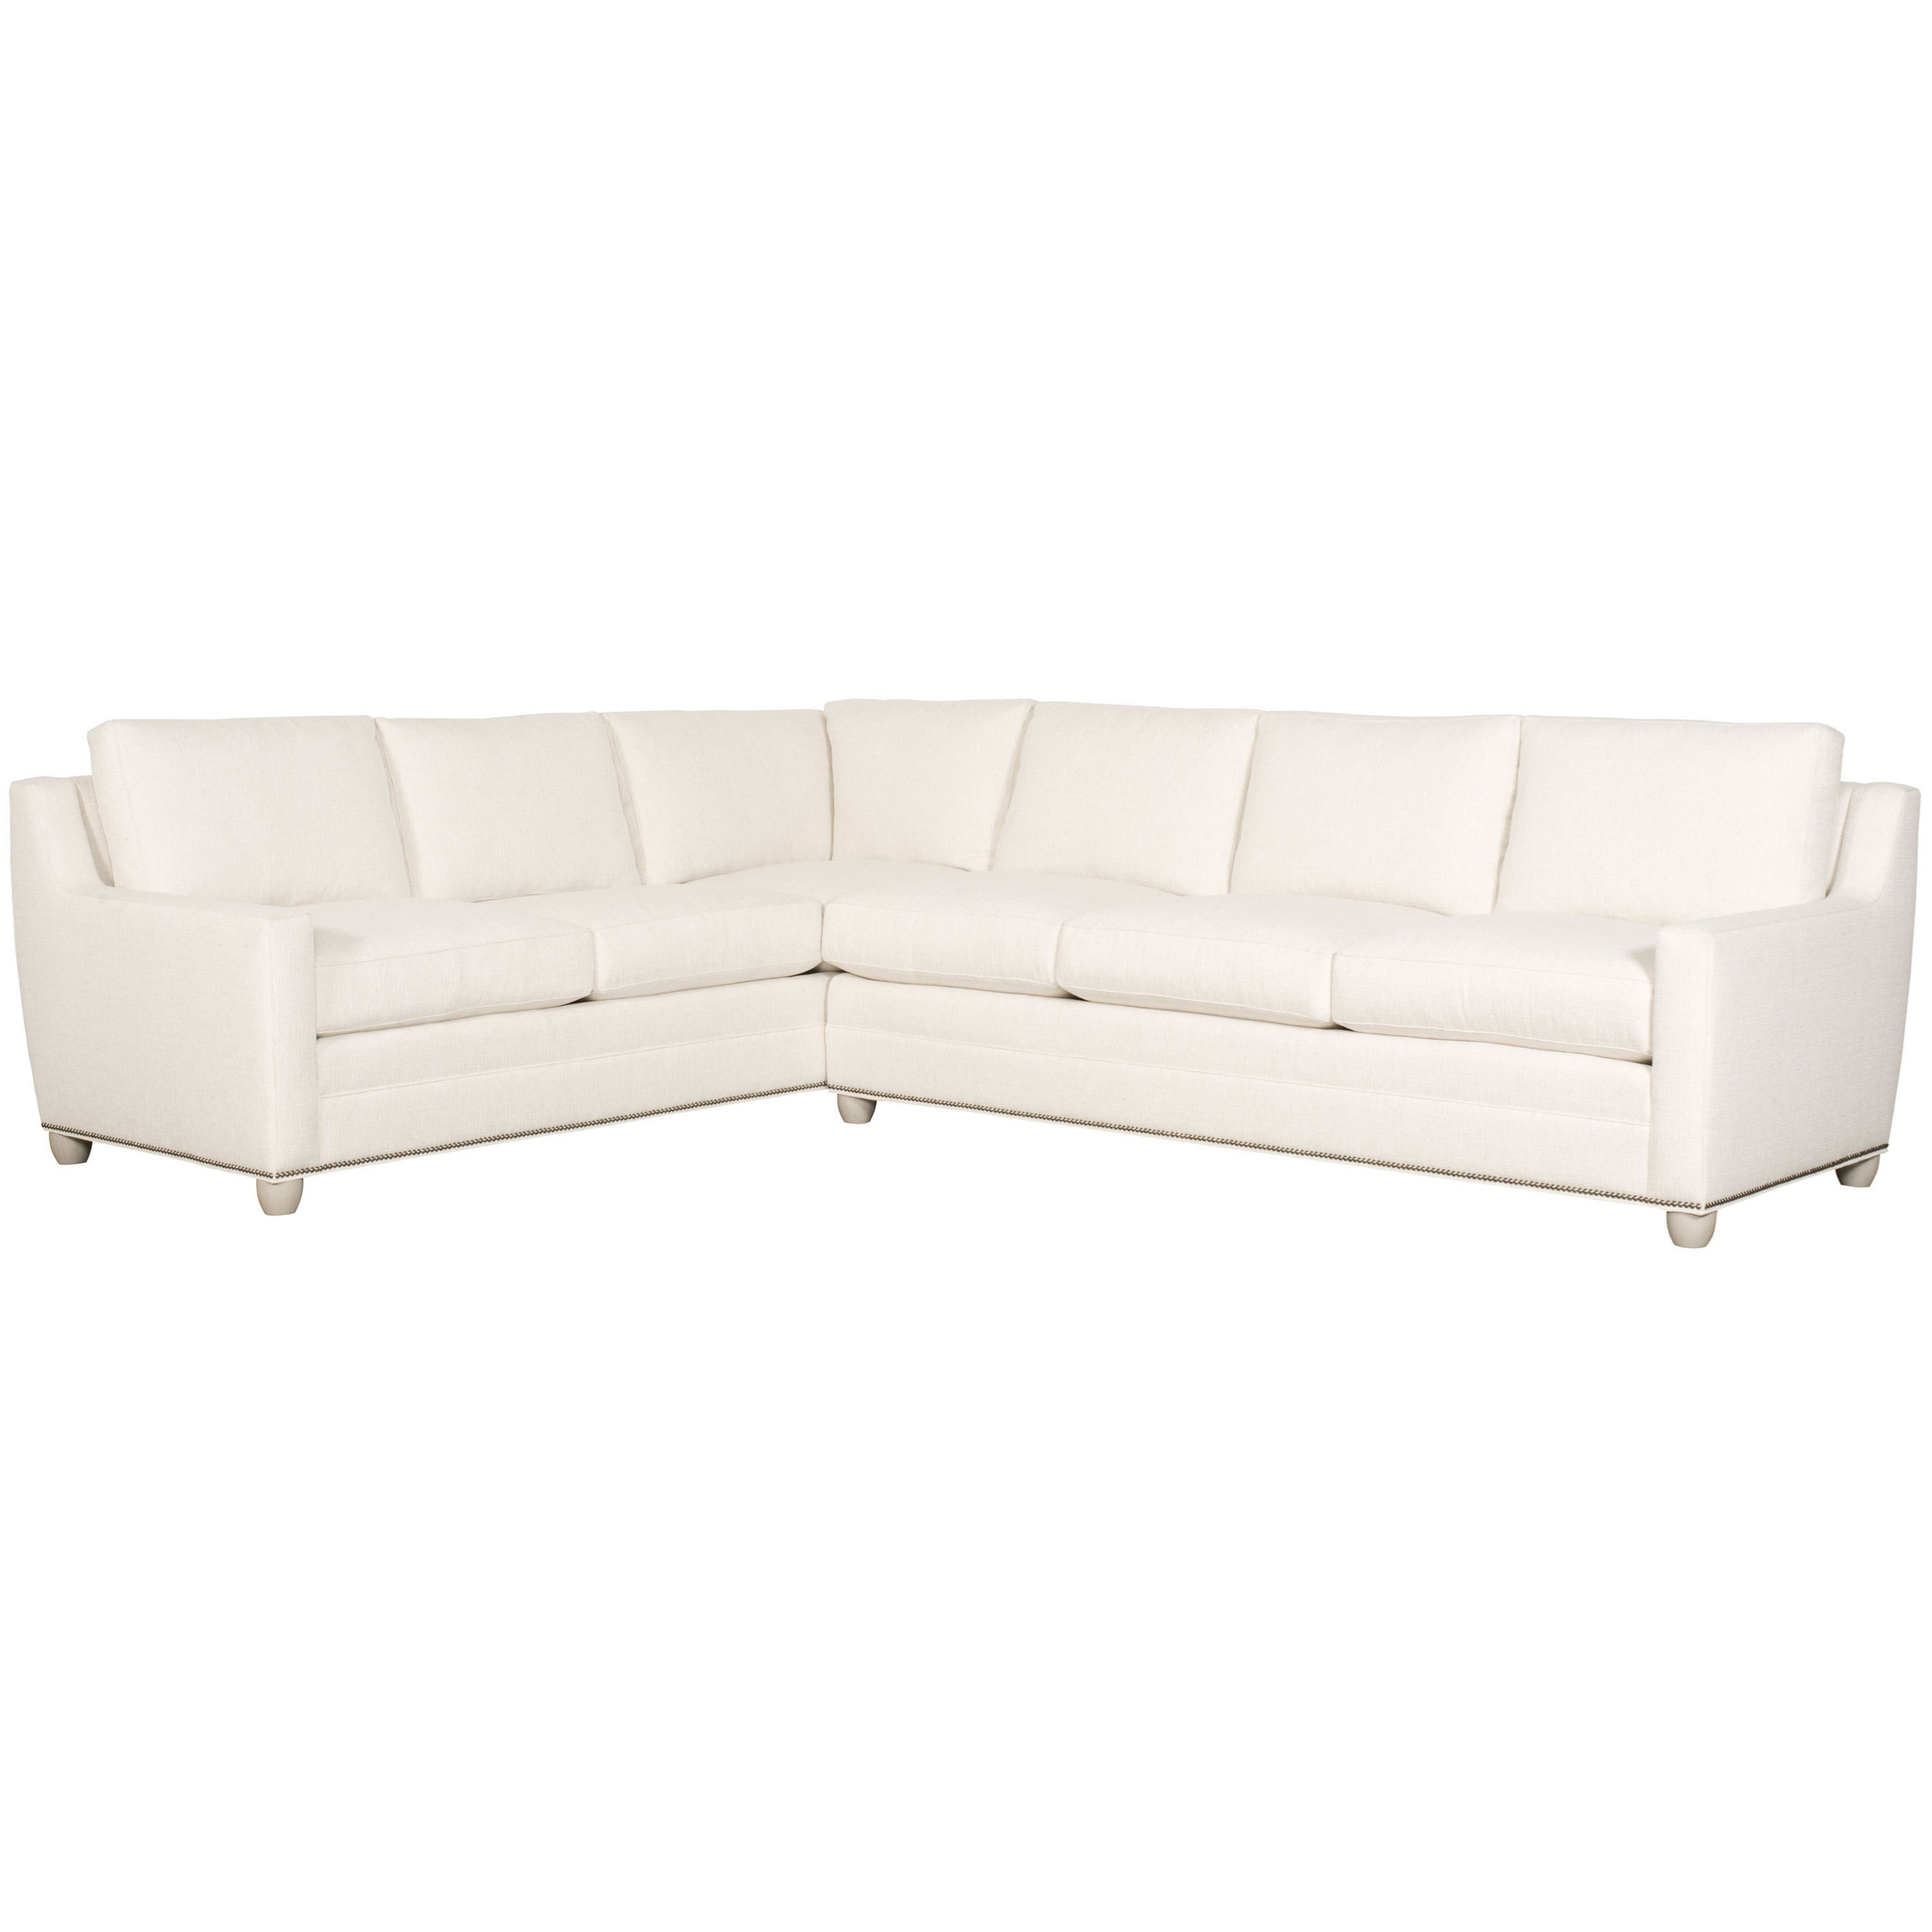 American Bungalow Fairgrove Sectional by Vanguard Furniture at Sprintz Furniture